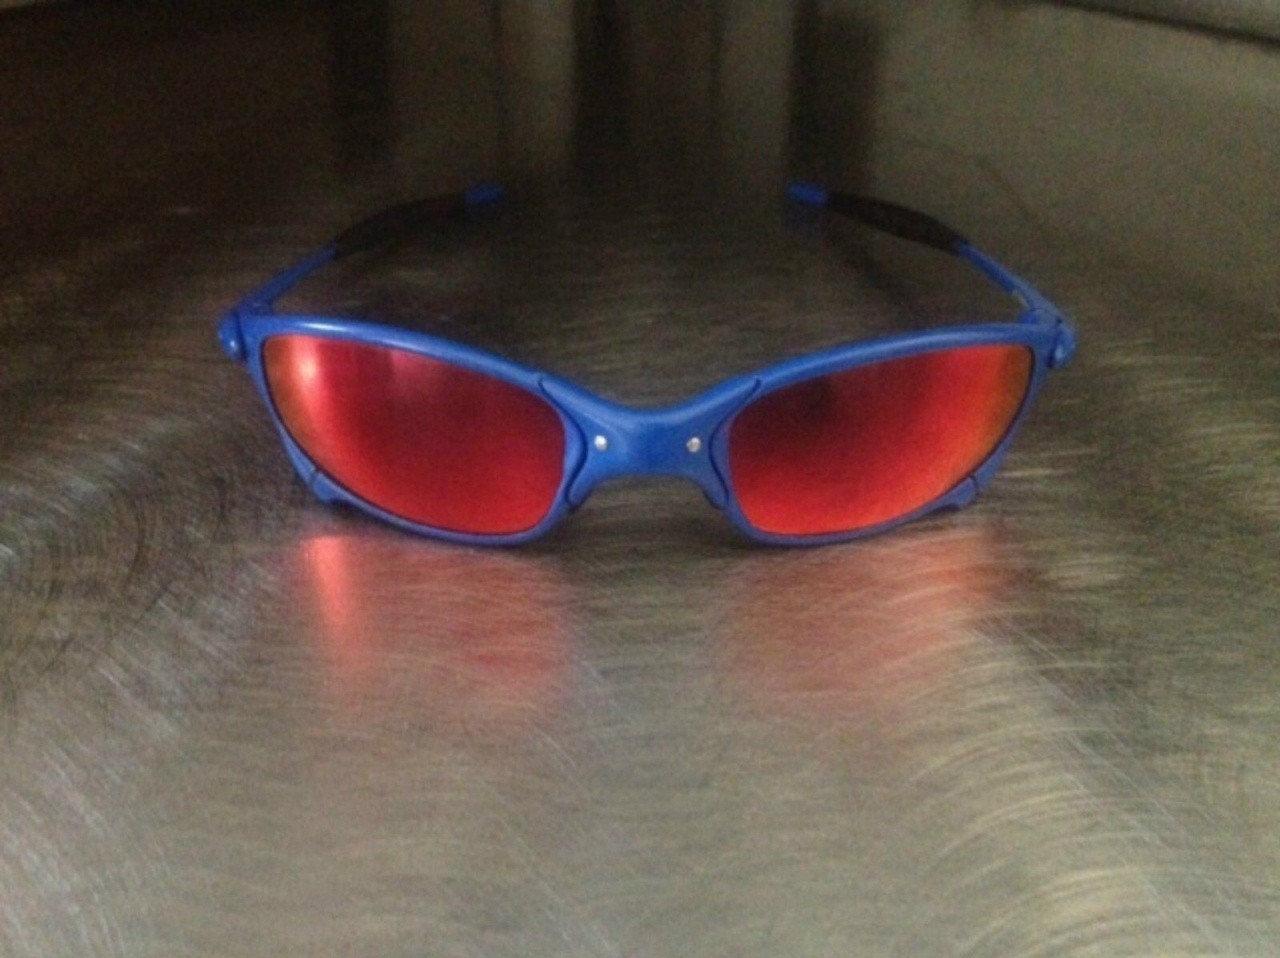 1st gen plasma serial number P027753 with deep red, custom cobalt blue finish